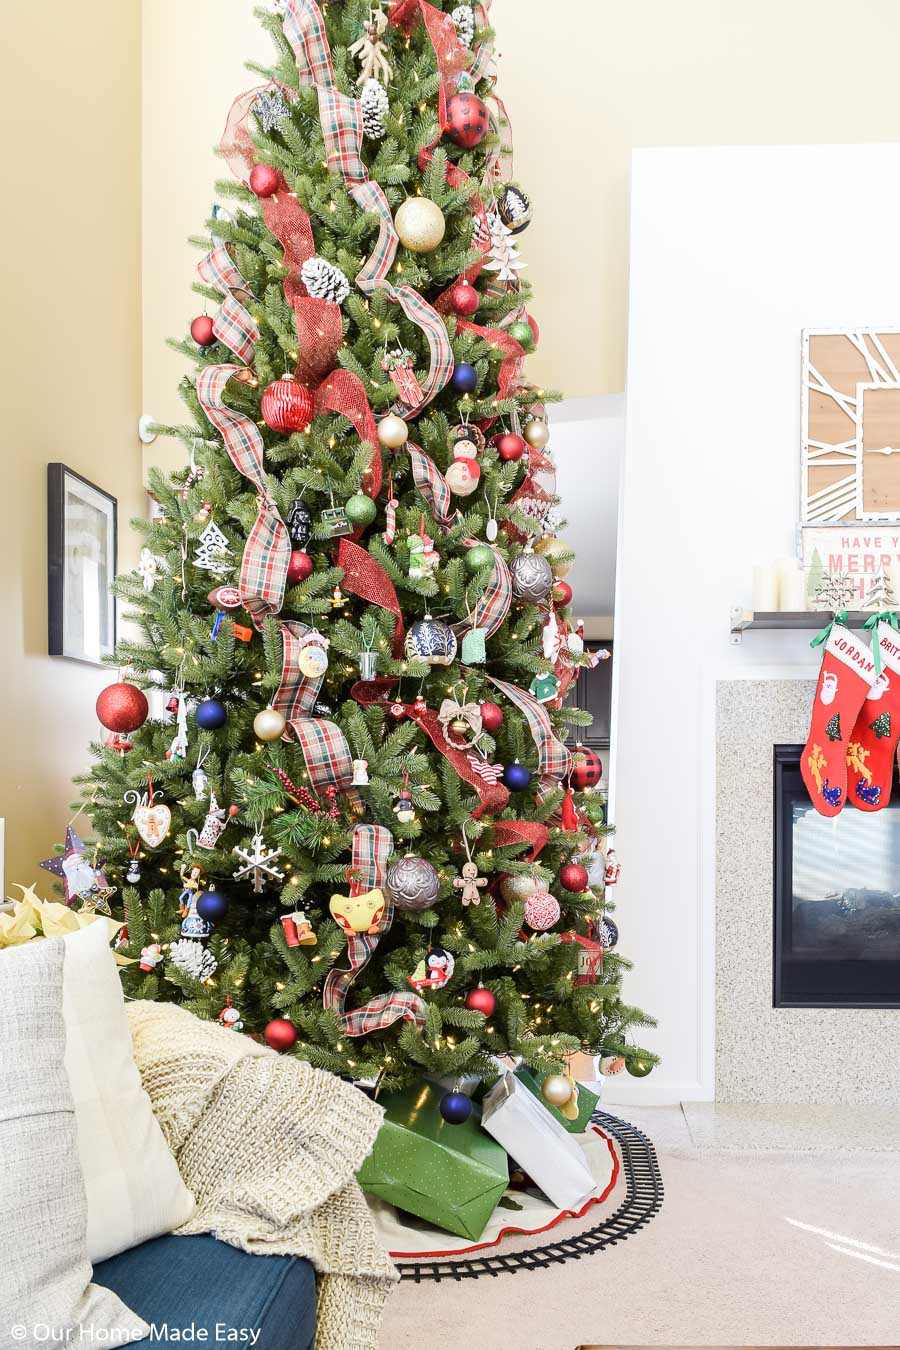 Here's an easy way keep your Christmas tree decorations under budget: decorate your tree using ribbon!